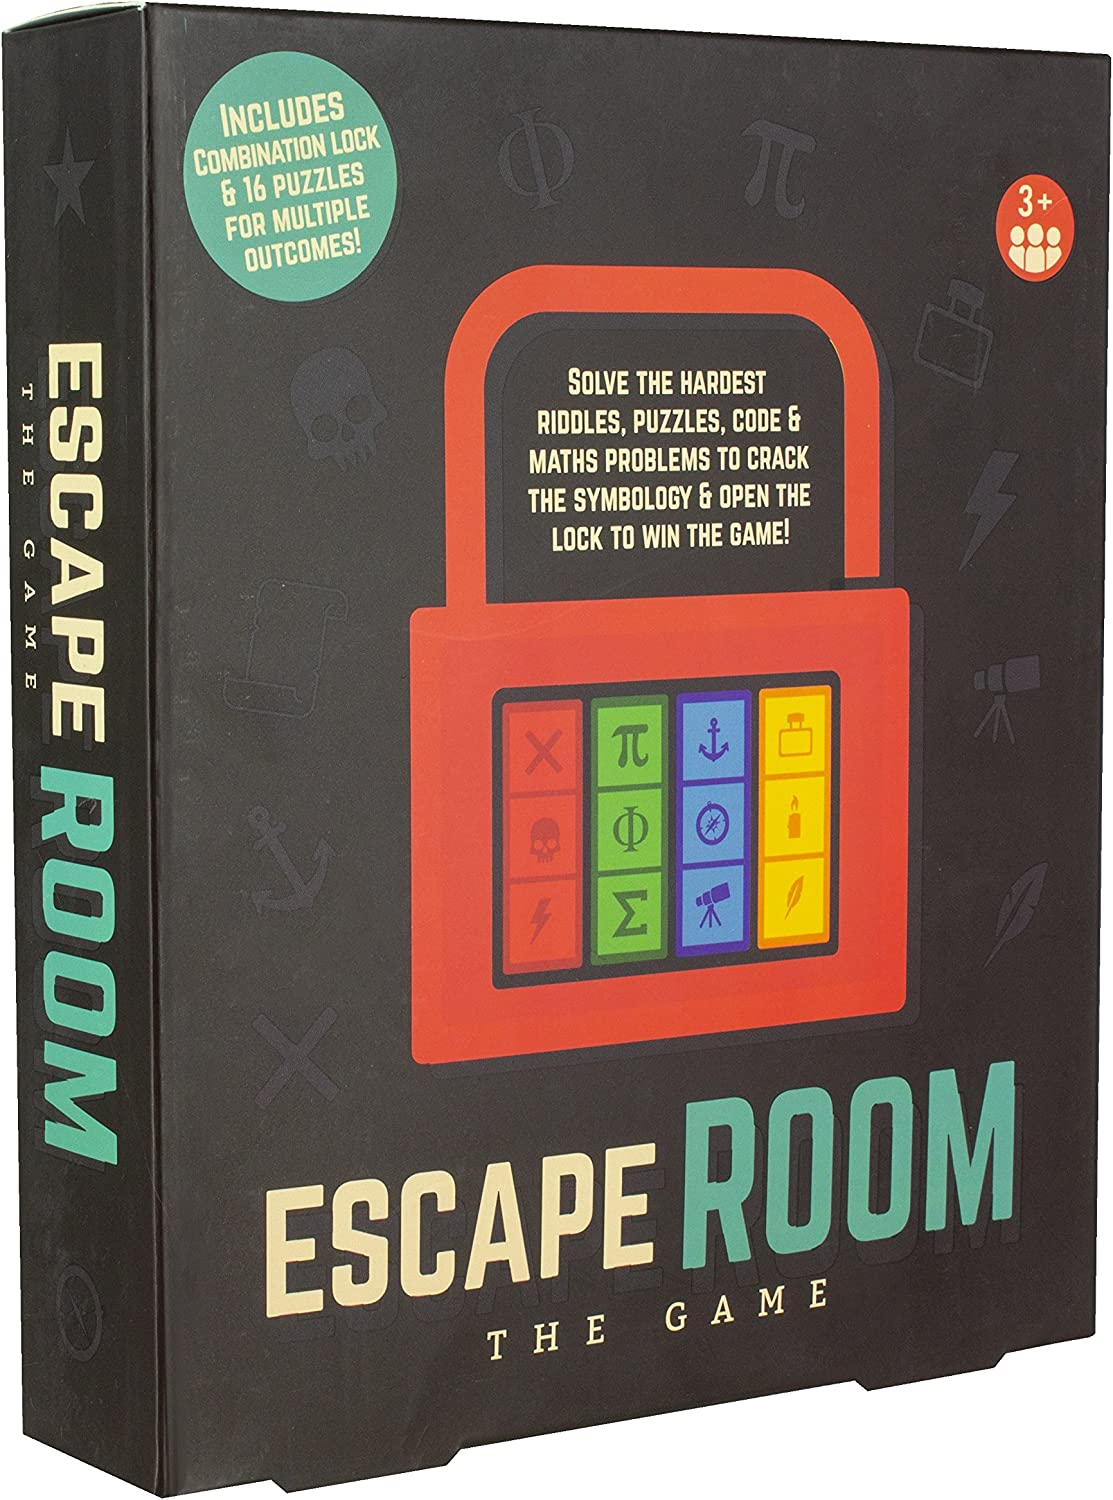 100 More Great Escape Room Puzzle Ideas